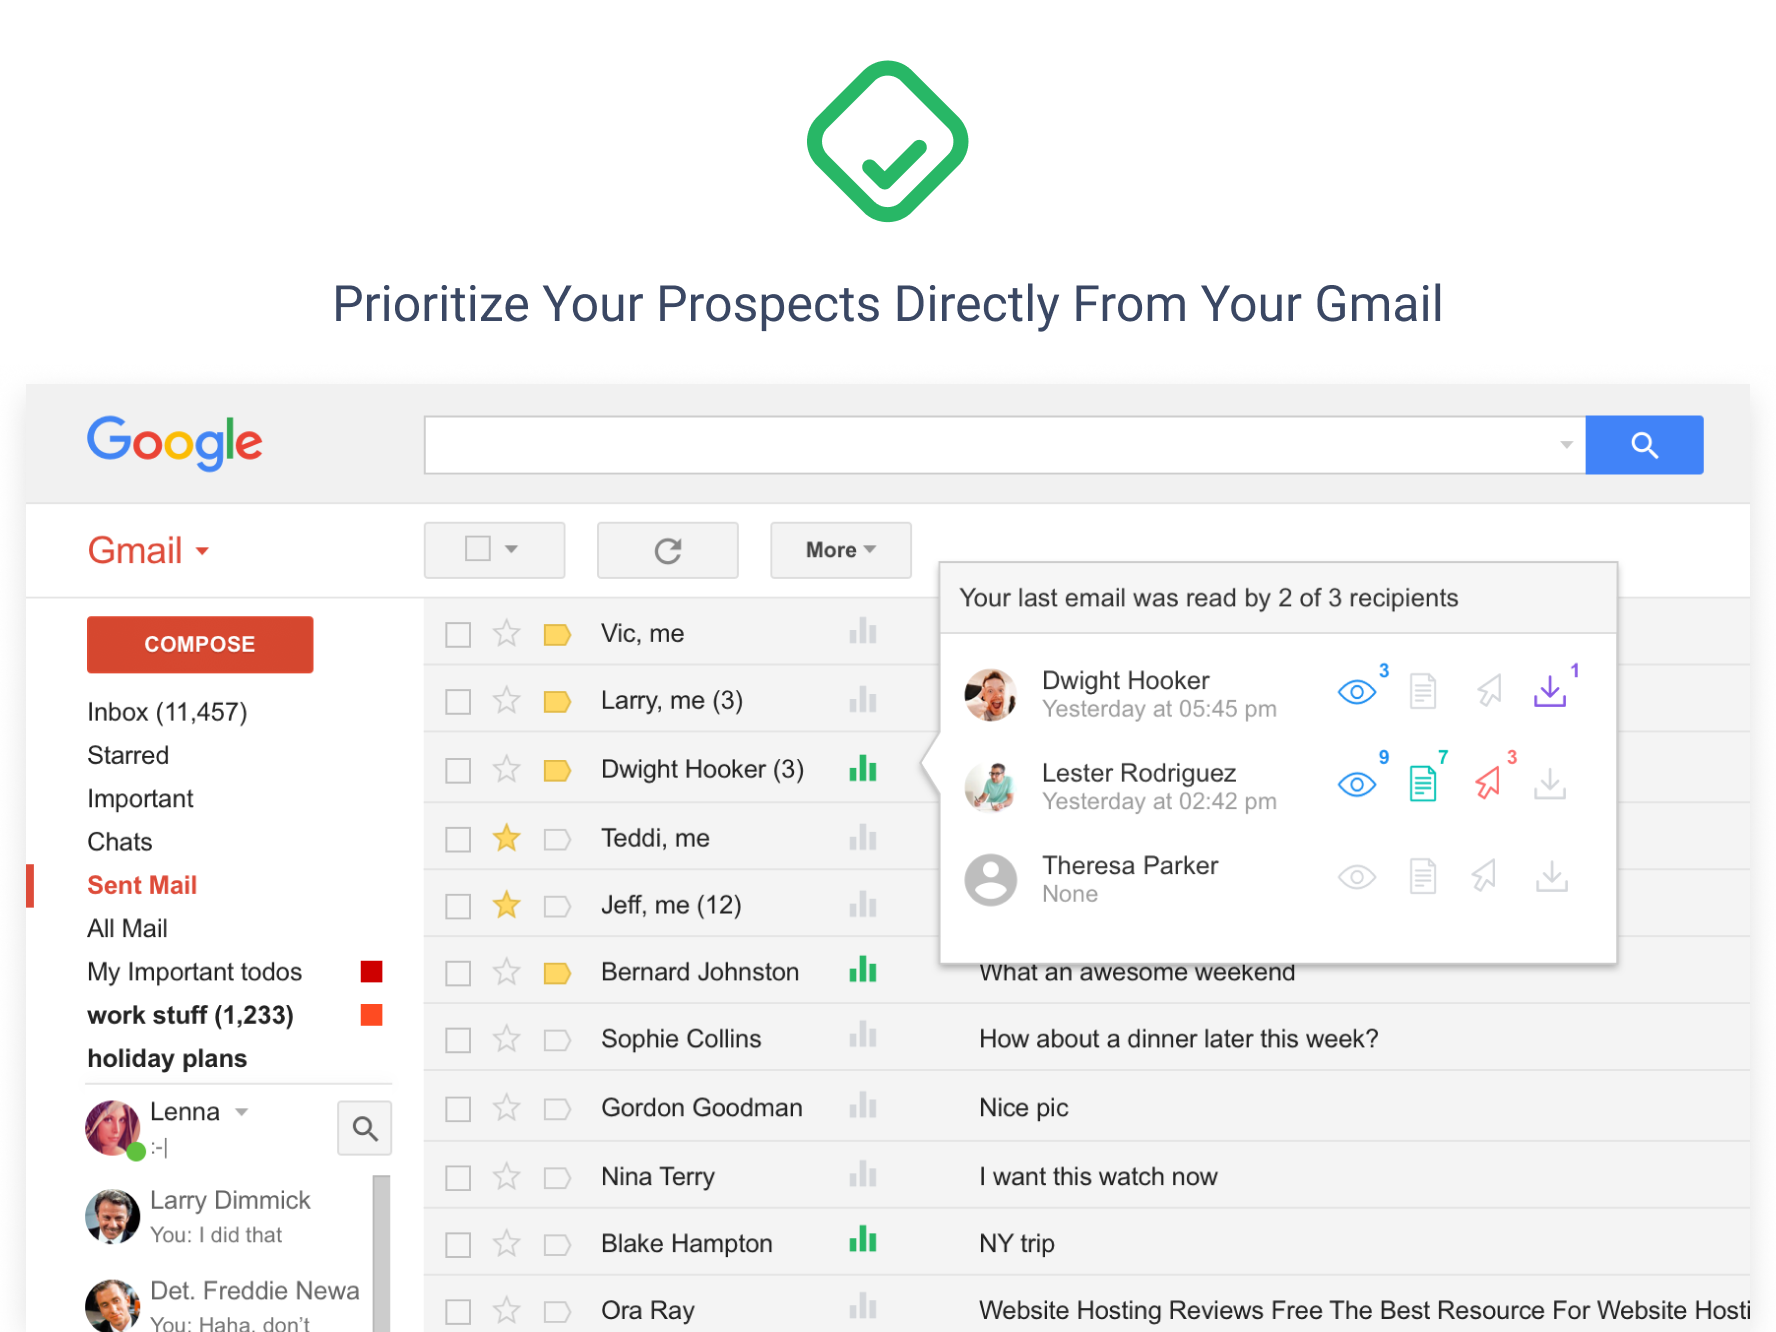 Docsify Demo - Prioritize Your Prospects Directly From Your Gmail